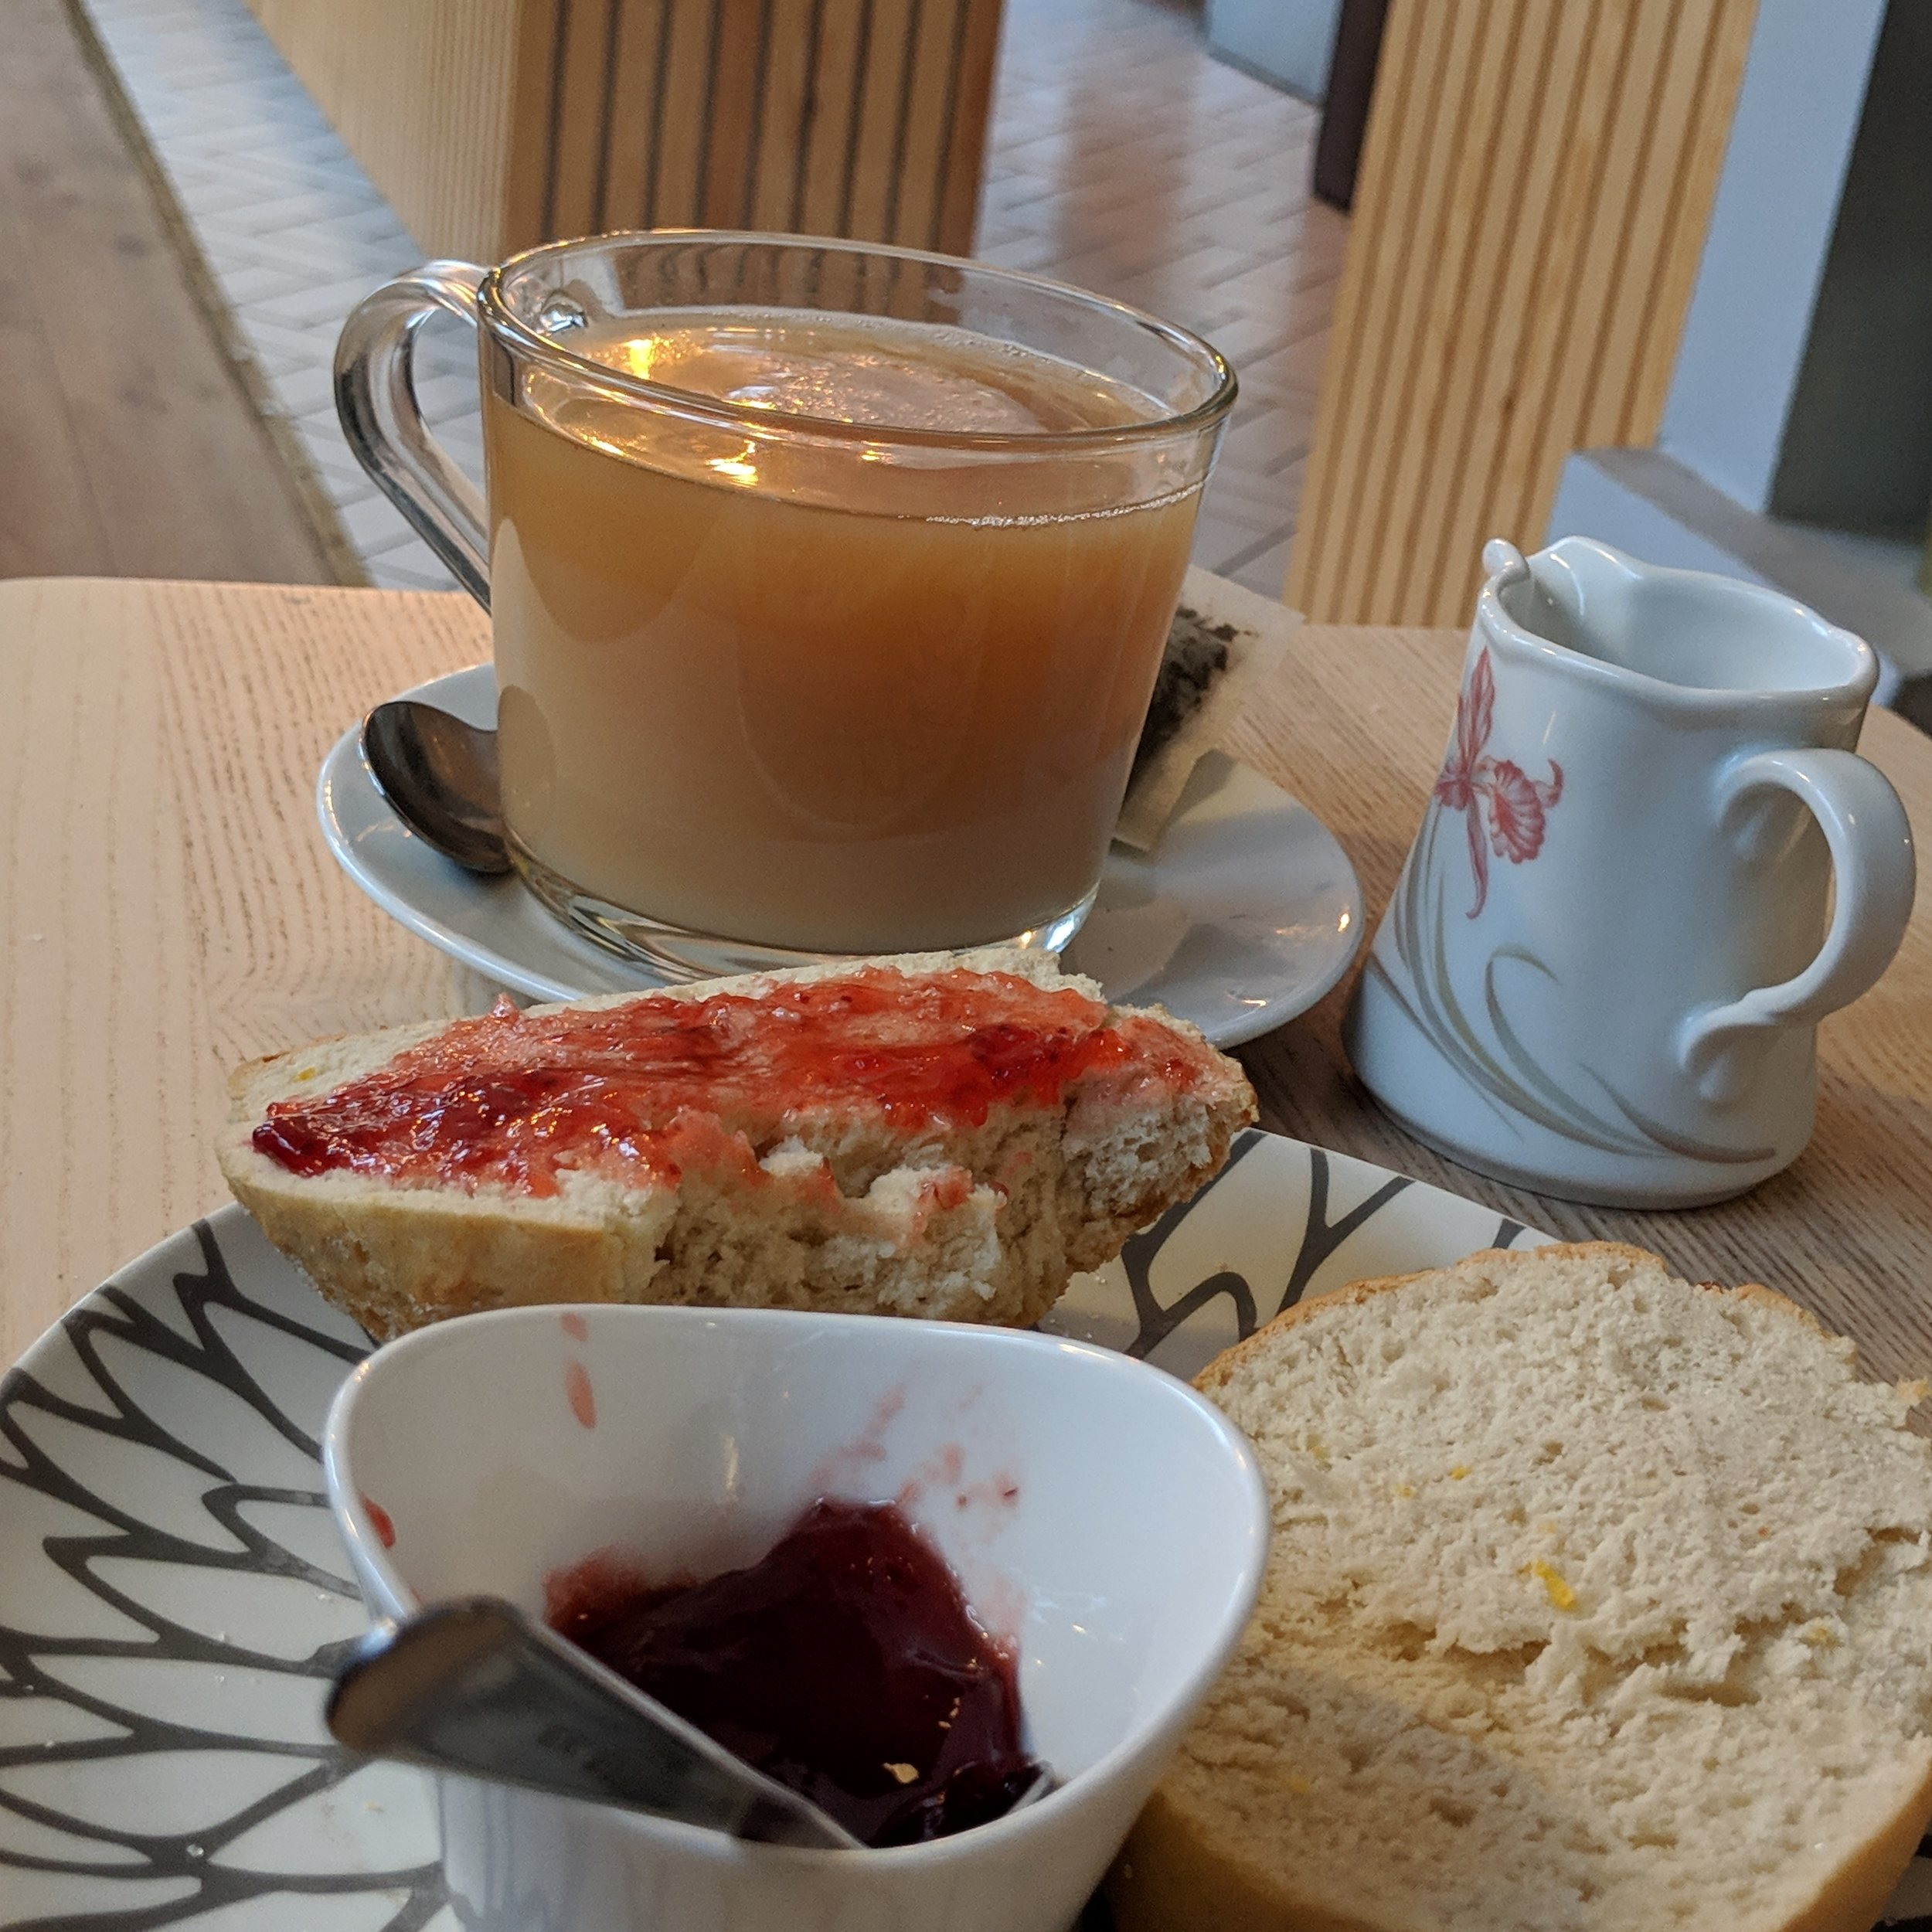 So there I was in Reykjavik eating a vegan scone….you know…as one does…